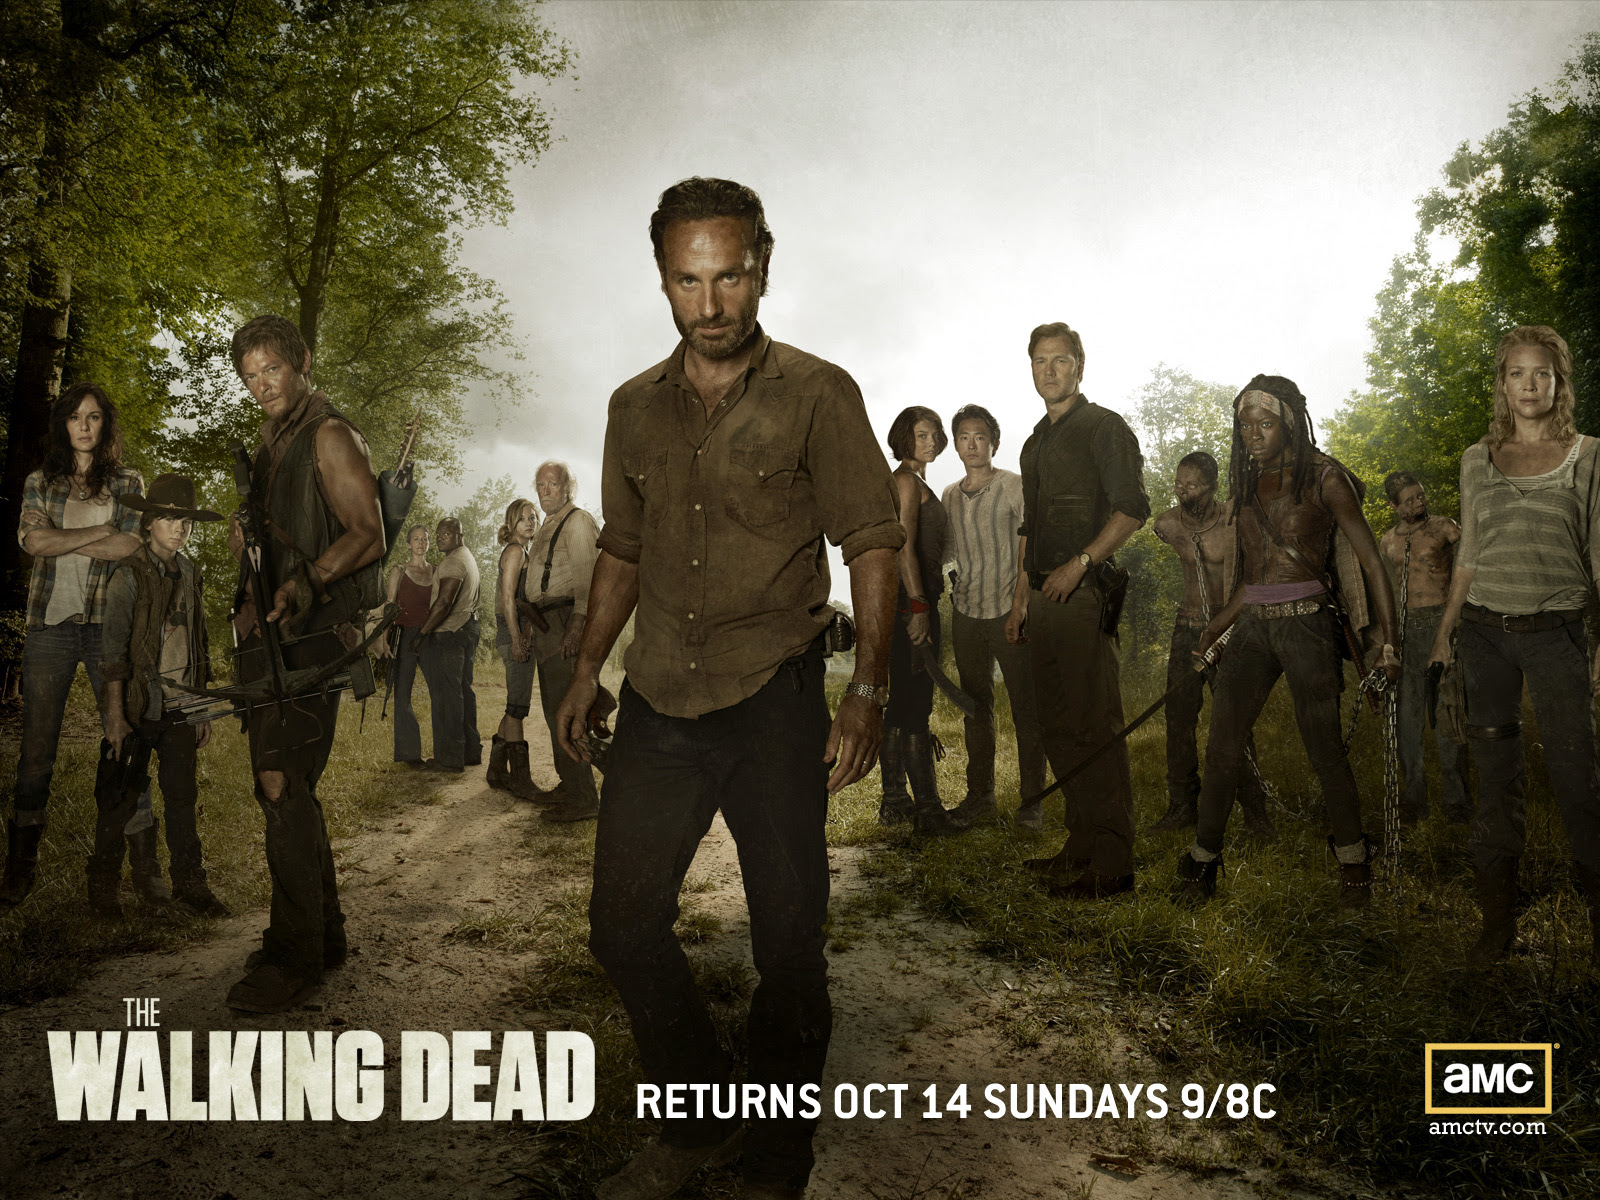 The Walking Dead The Walking Dead Wallpaper 32297727